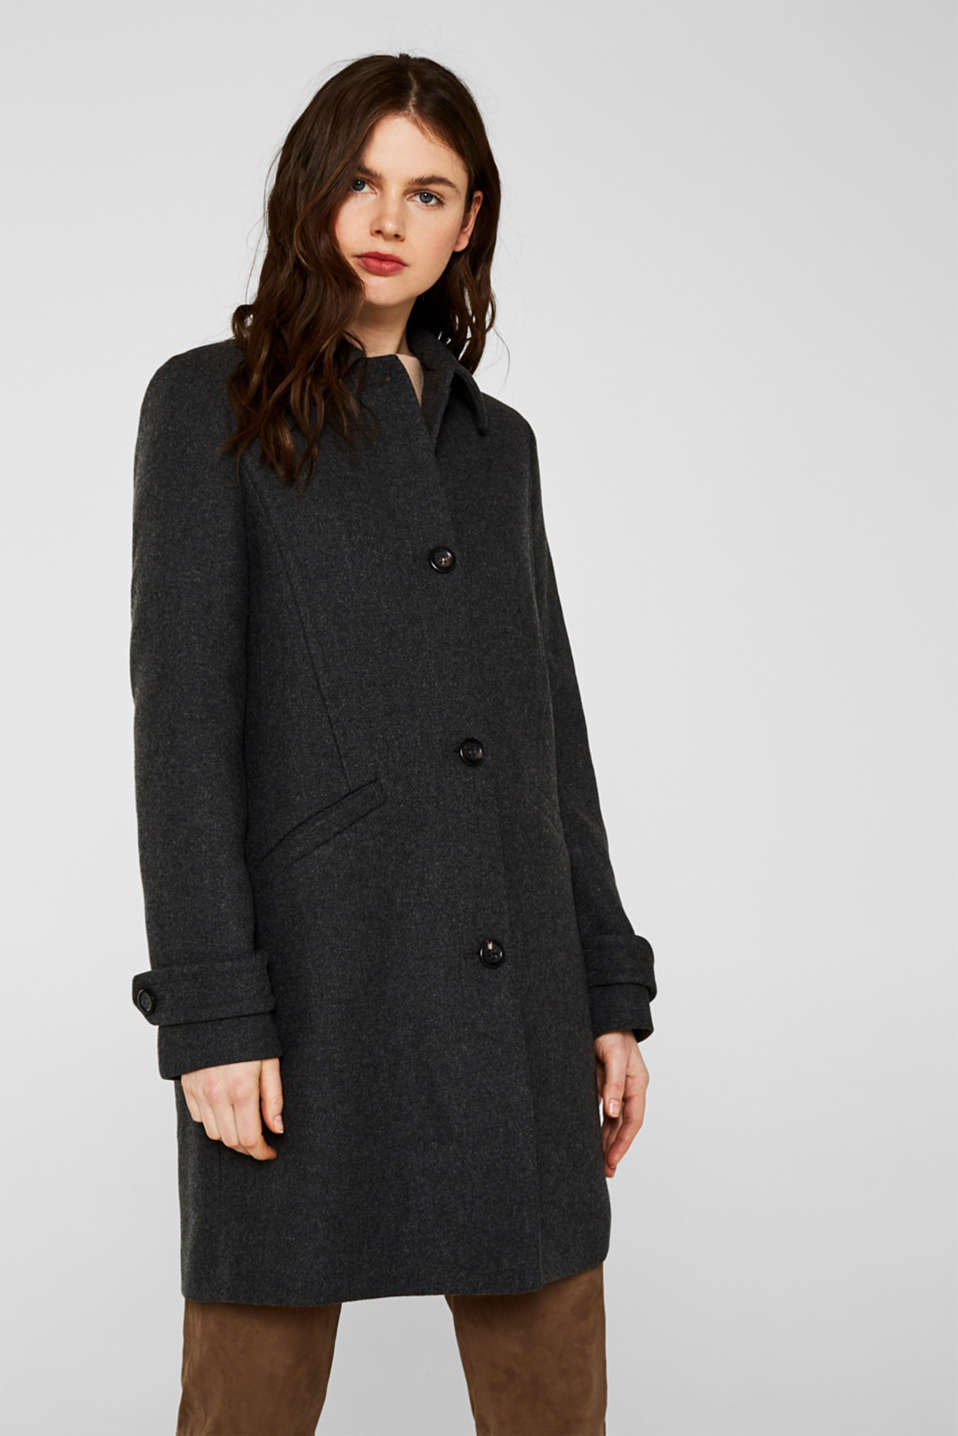 Esprit - With wool: Coat made of exquisite yarn